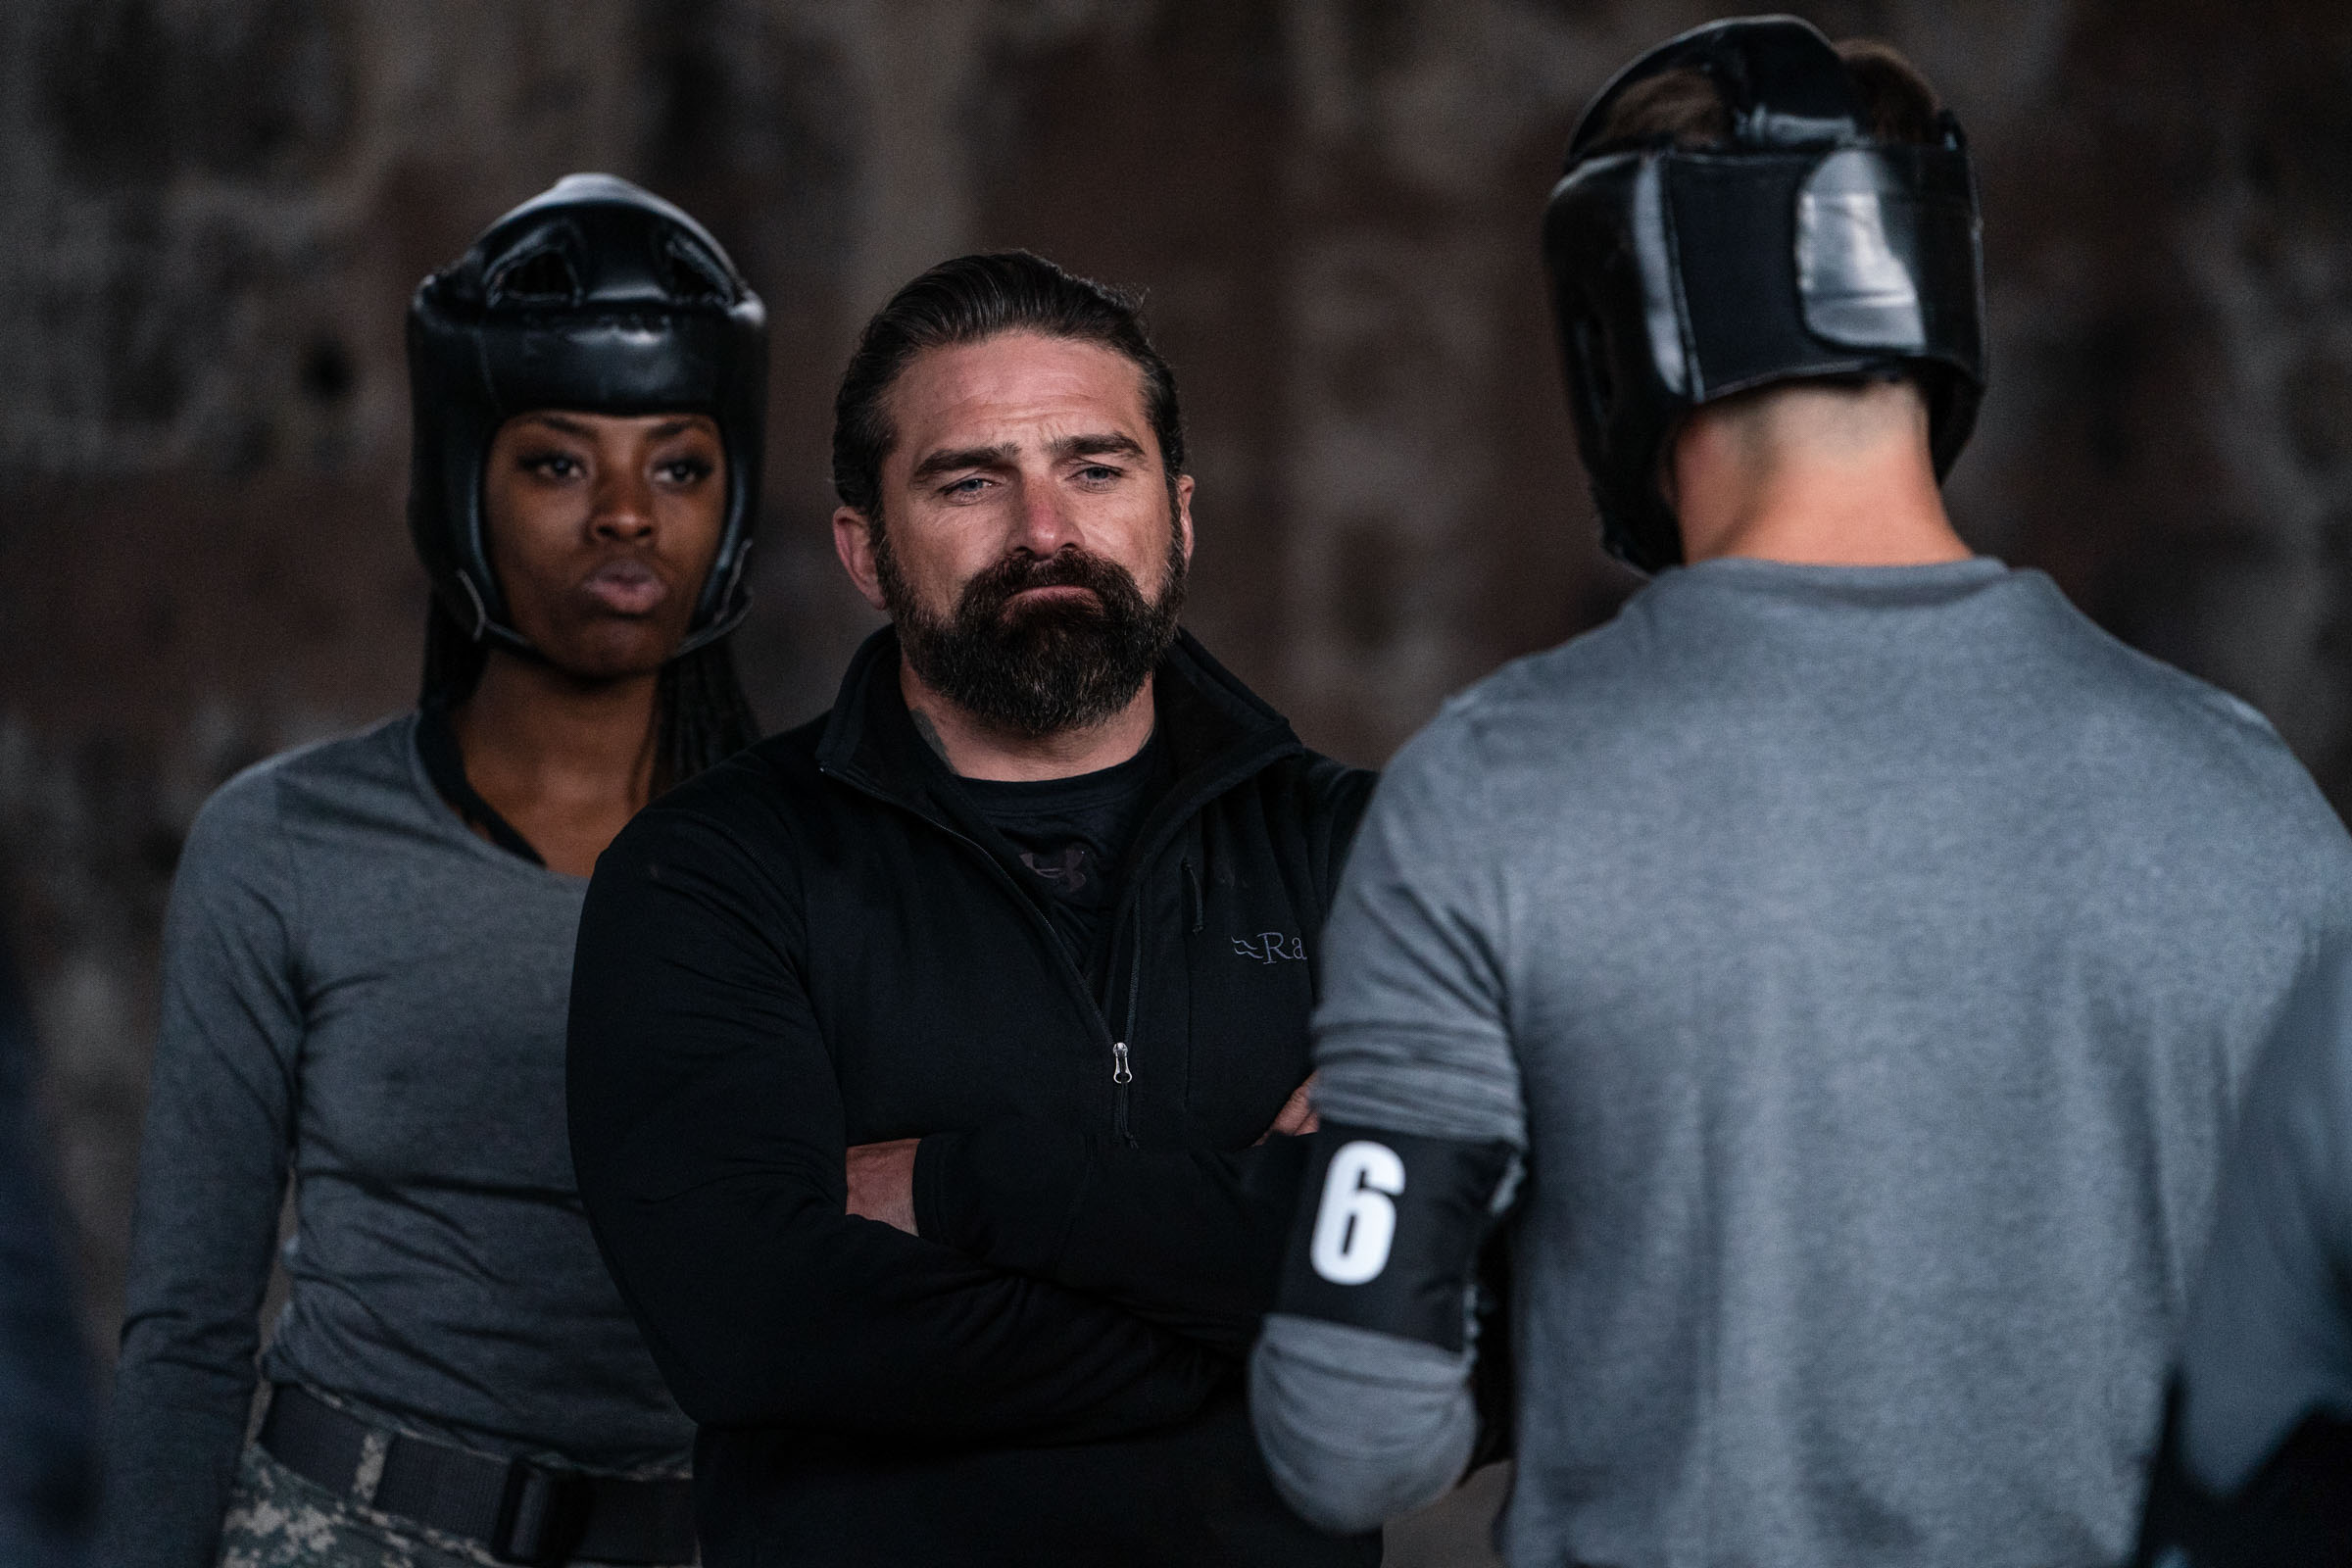 Chief Instructor Ant Middleton AjJ Odudu and Jeremy Irvine during the 2 vs 1 boxing  Episode 1 - Courage  Minnow Films / Channel 4